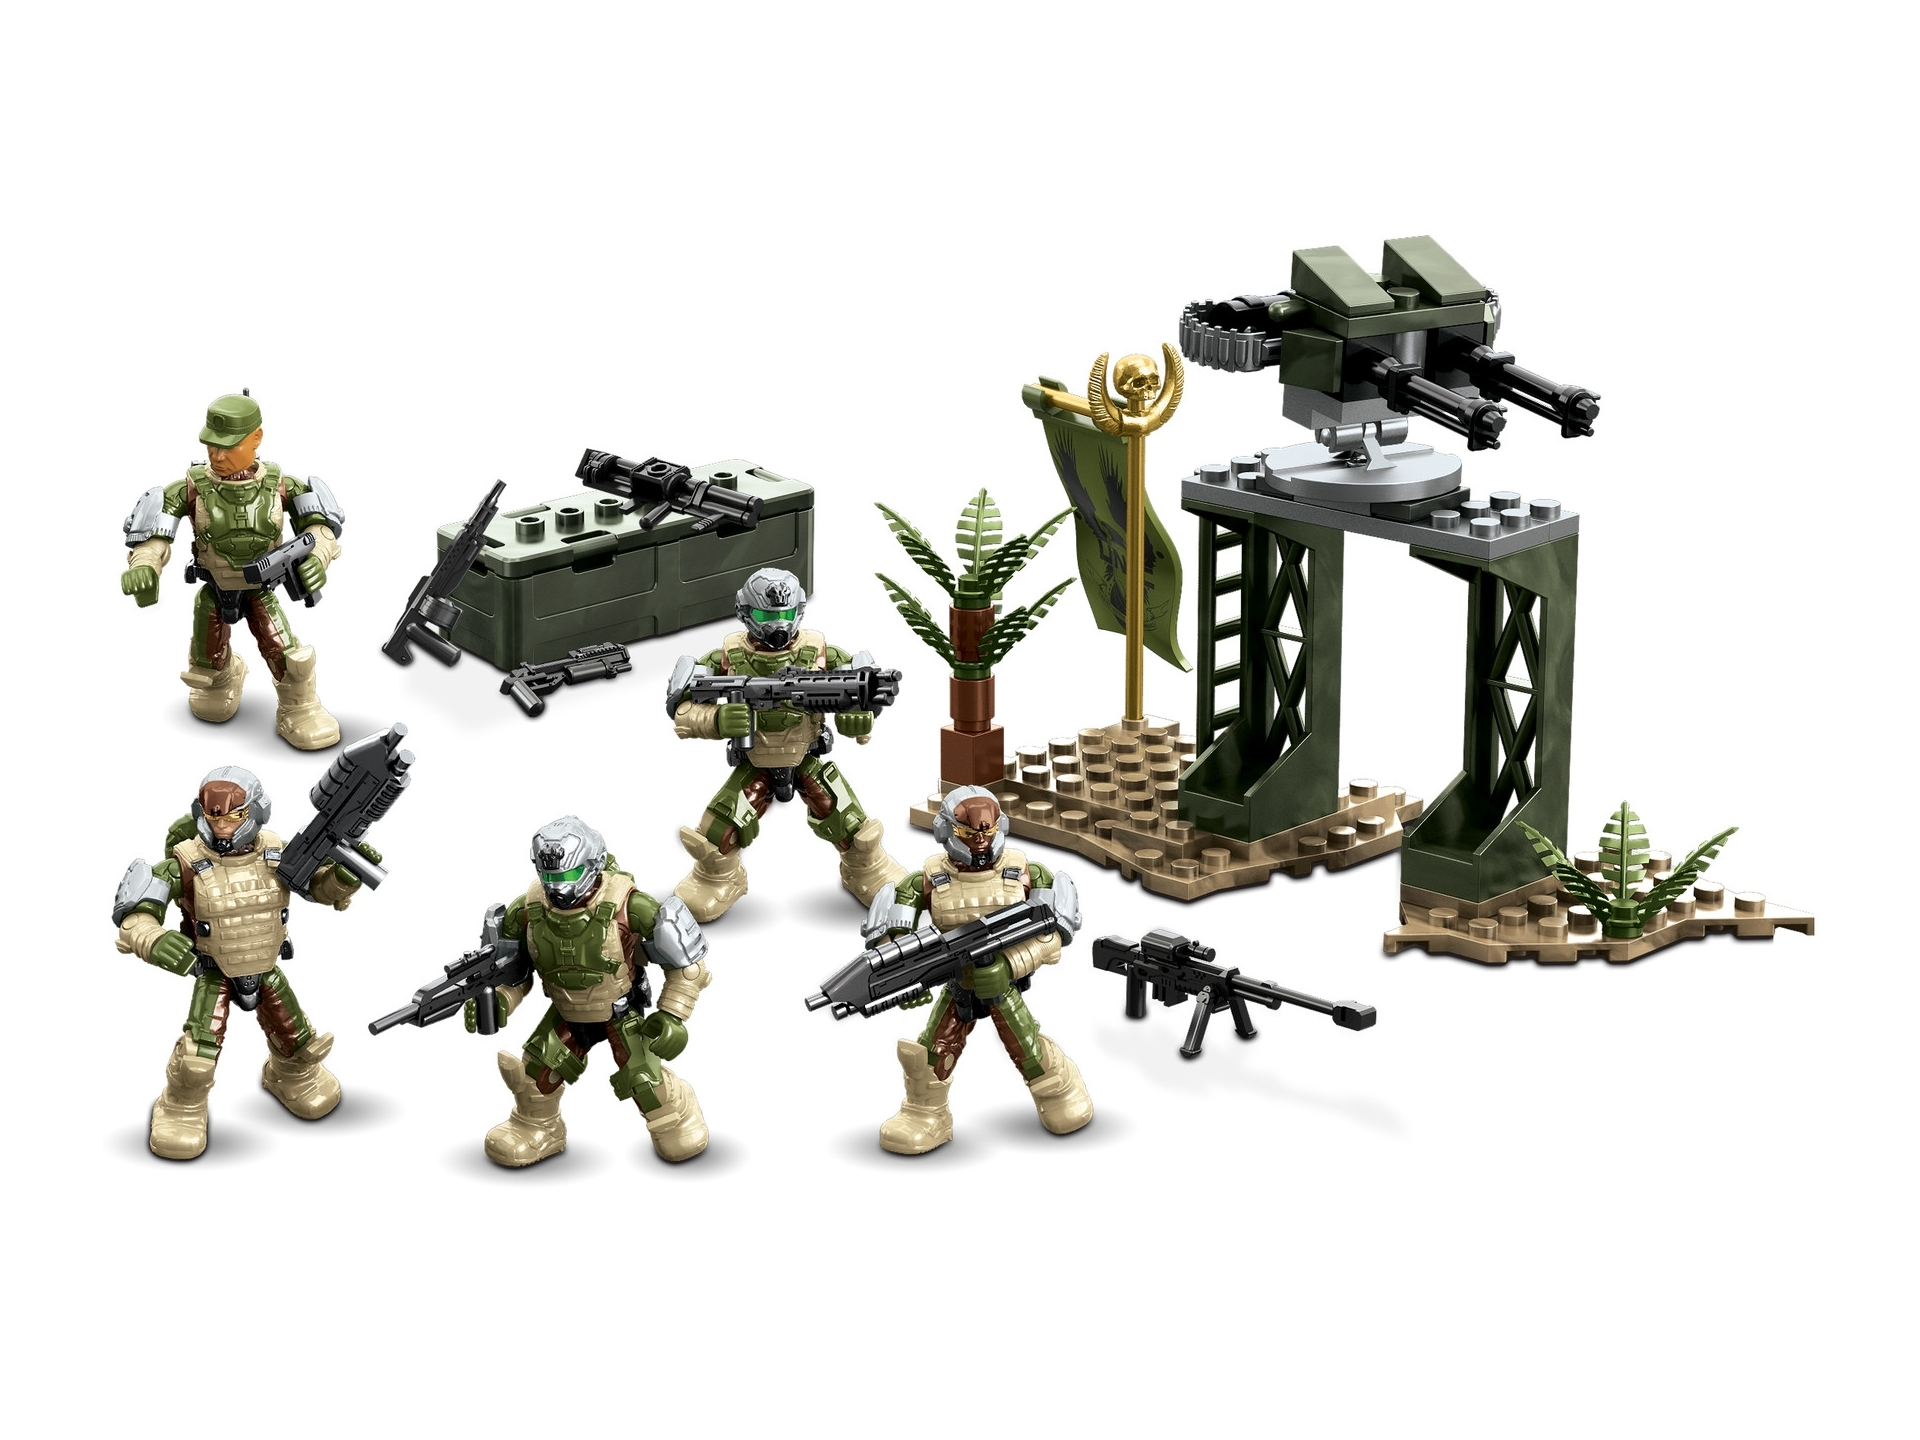 2015 Halo Mega Bloks UNSC [Fireteam] SIERRA SQUAD [Combat Unit] officially licensed Mega Bloks Halo product at B.A. Toys.